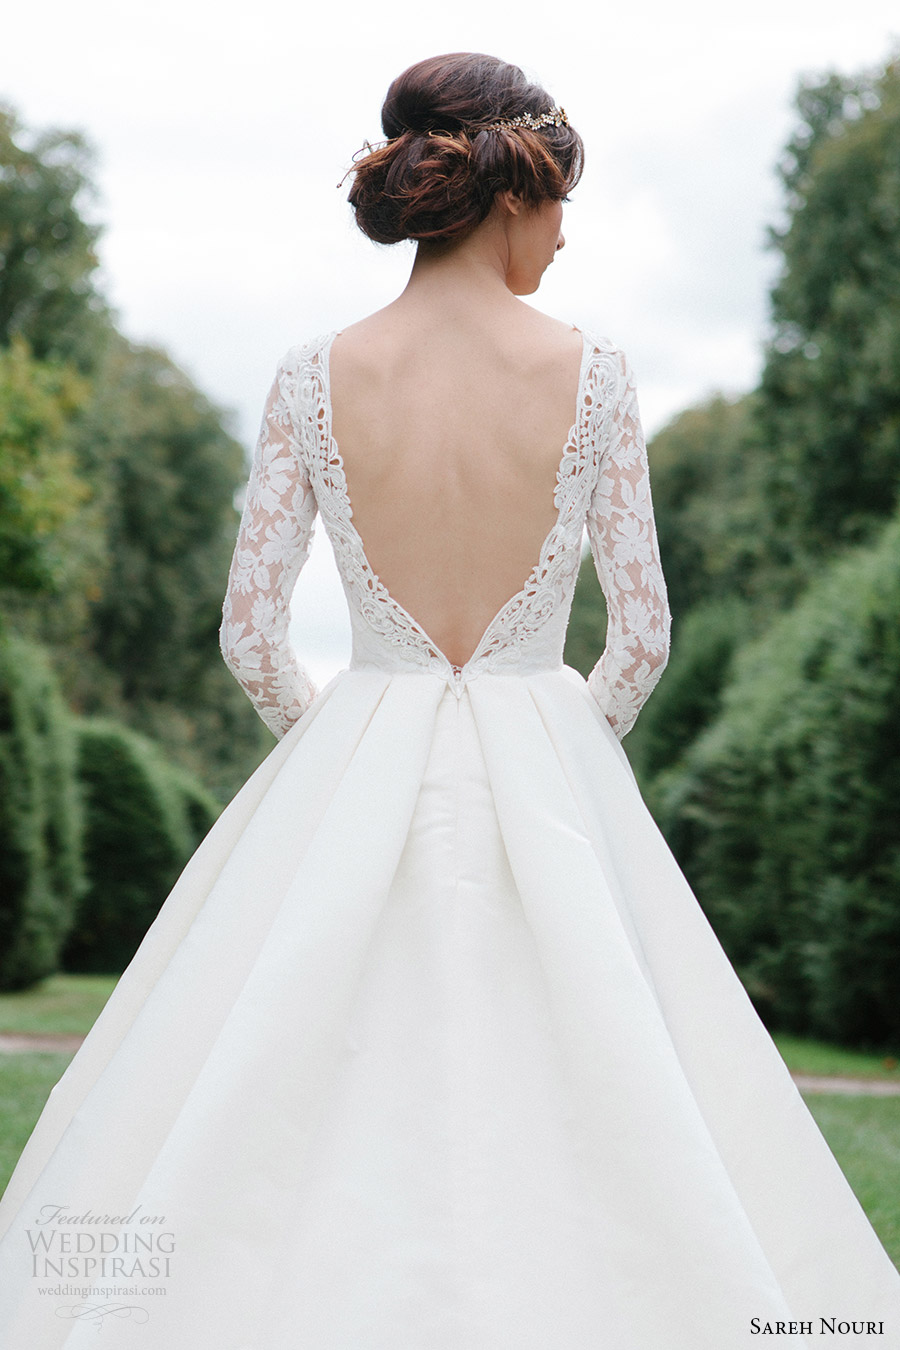 sareh nouri bridal fall 2016 long sleeve deep vneck aline ball gown wedding dress (laylee) zbv plunging back train romantic elegant